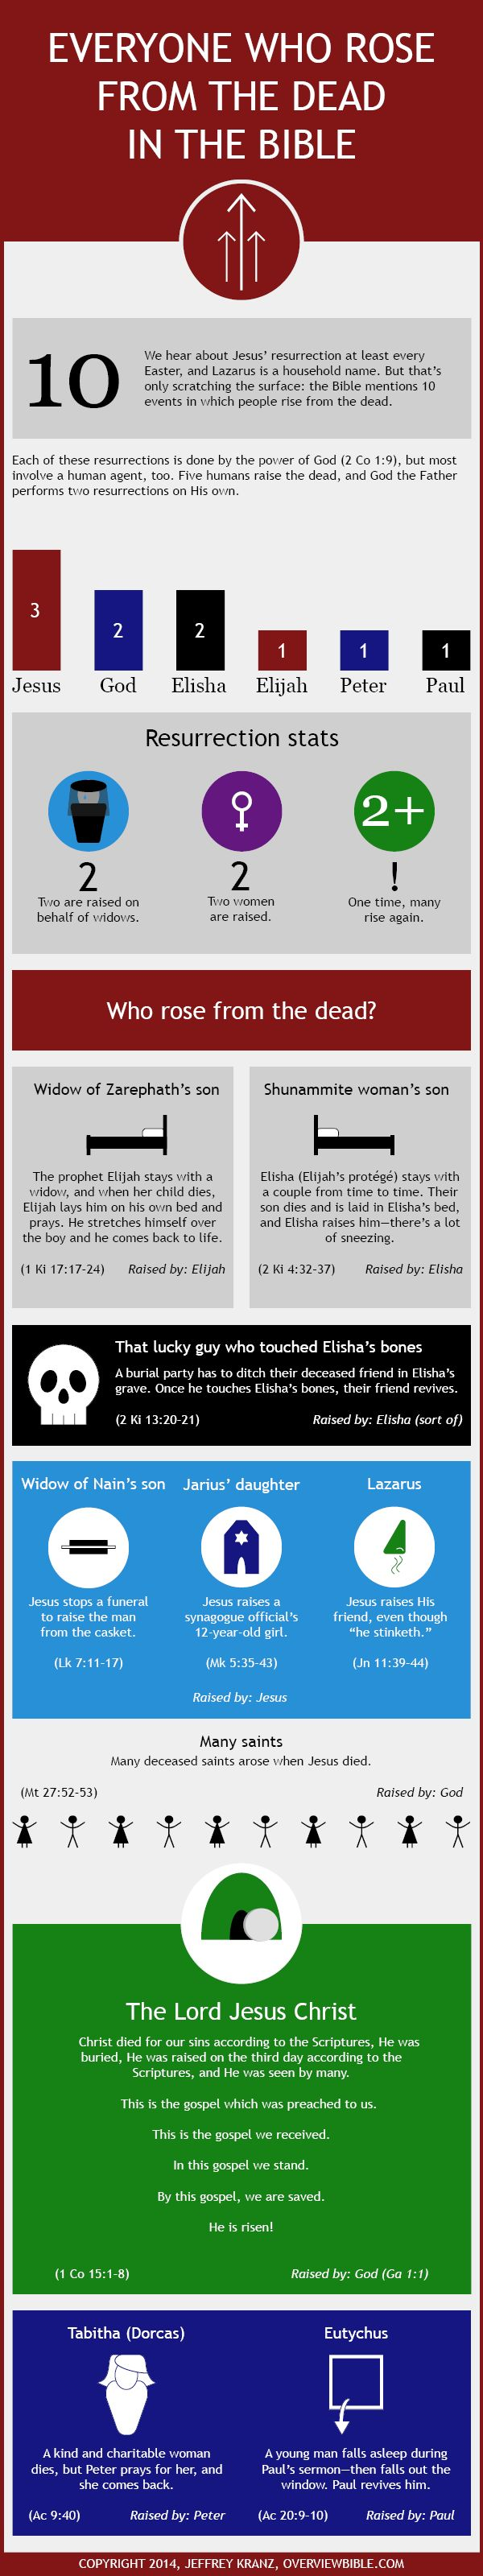 There are 10 accounts of people who rose from the dead in the Bible (infographic), but only Jesus claimed to be and fulfilled the prophecies of the promised Messiah.